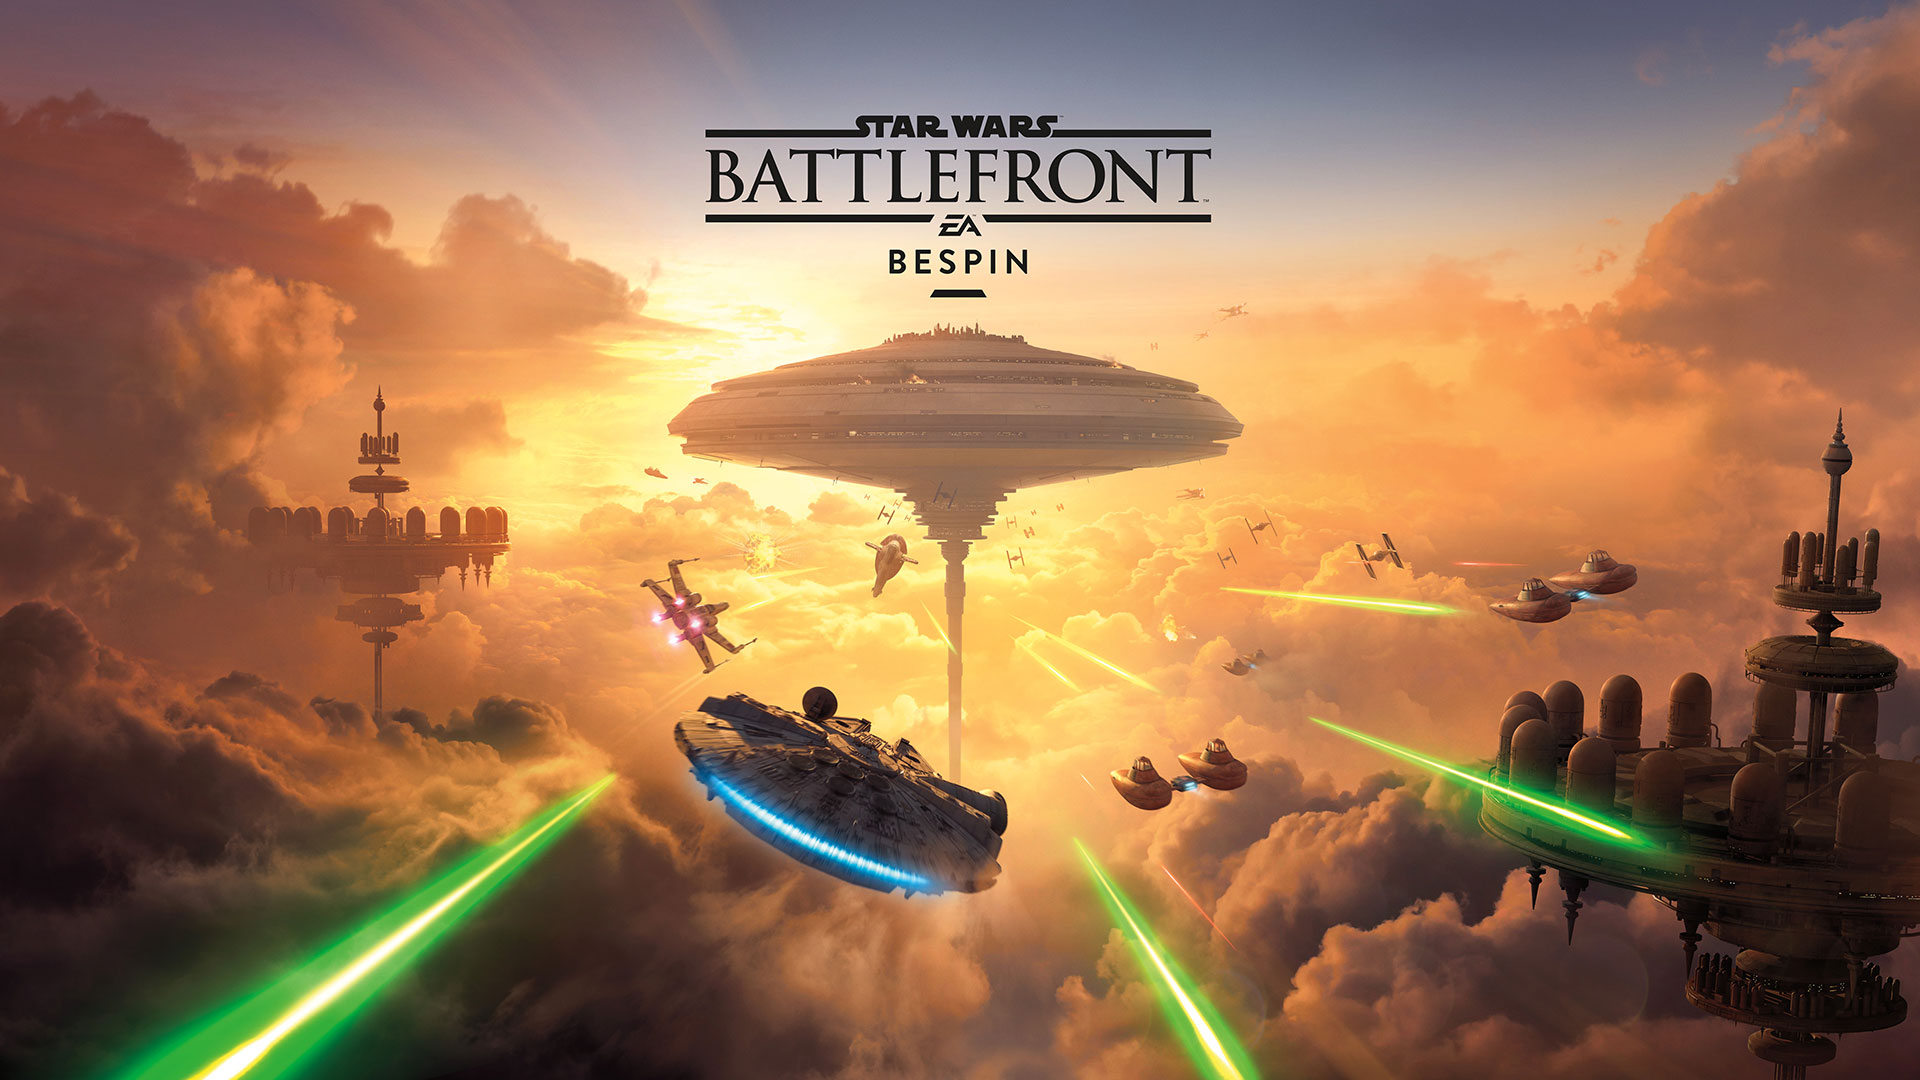 Star Wars Battlefront Wallpapers Video Game Hq Star Wars